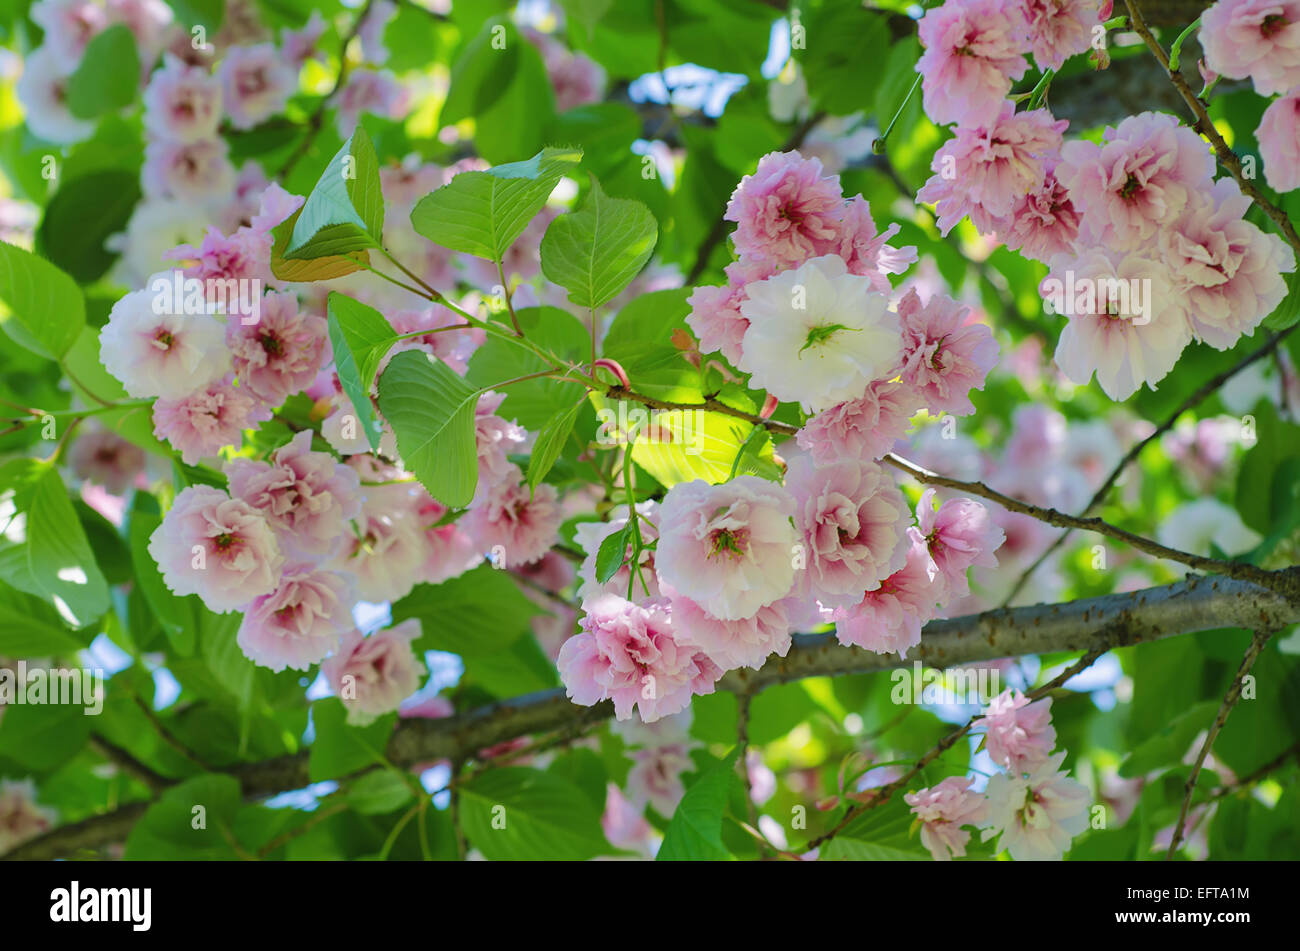 Blossoming Of Sakura Tree Flowers Natural Floral Spring Seasonal